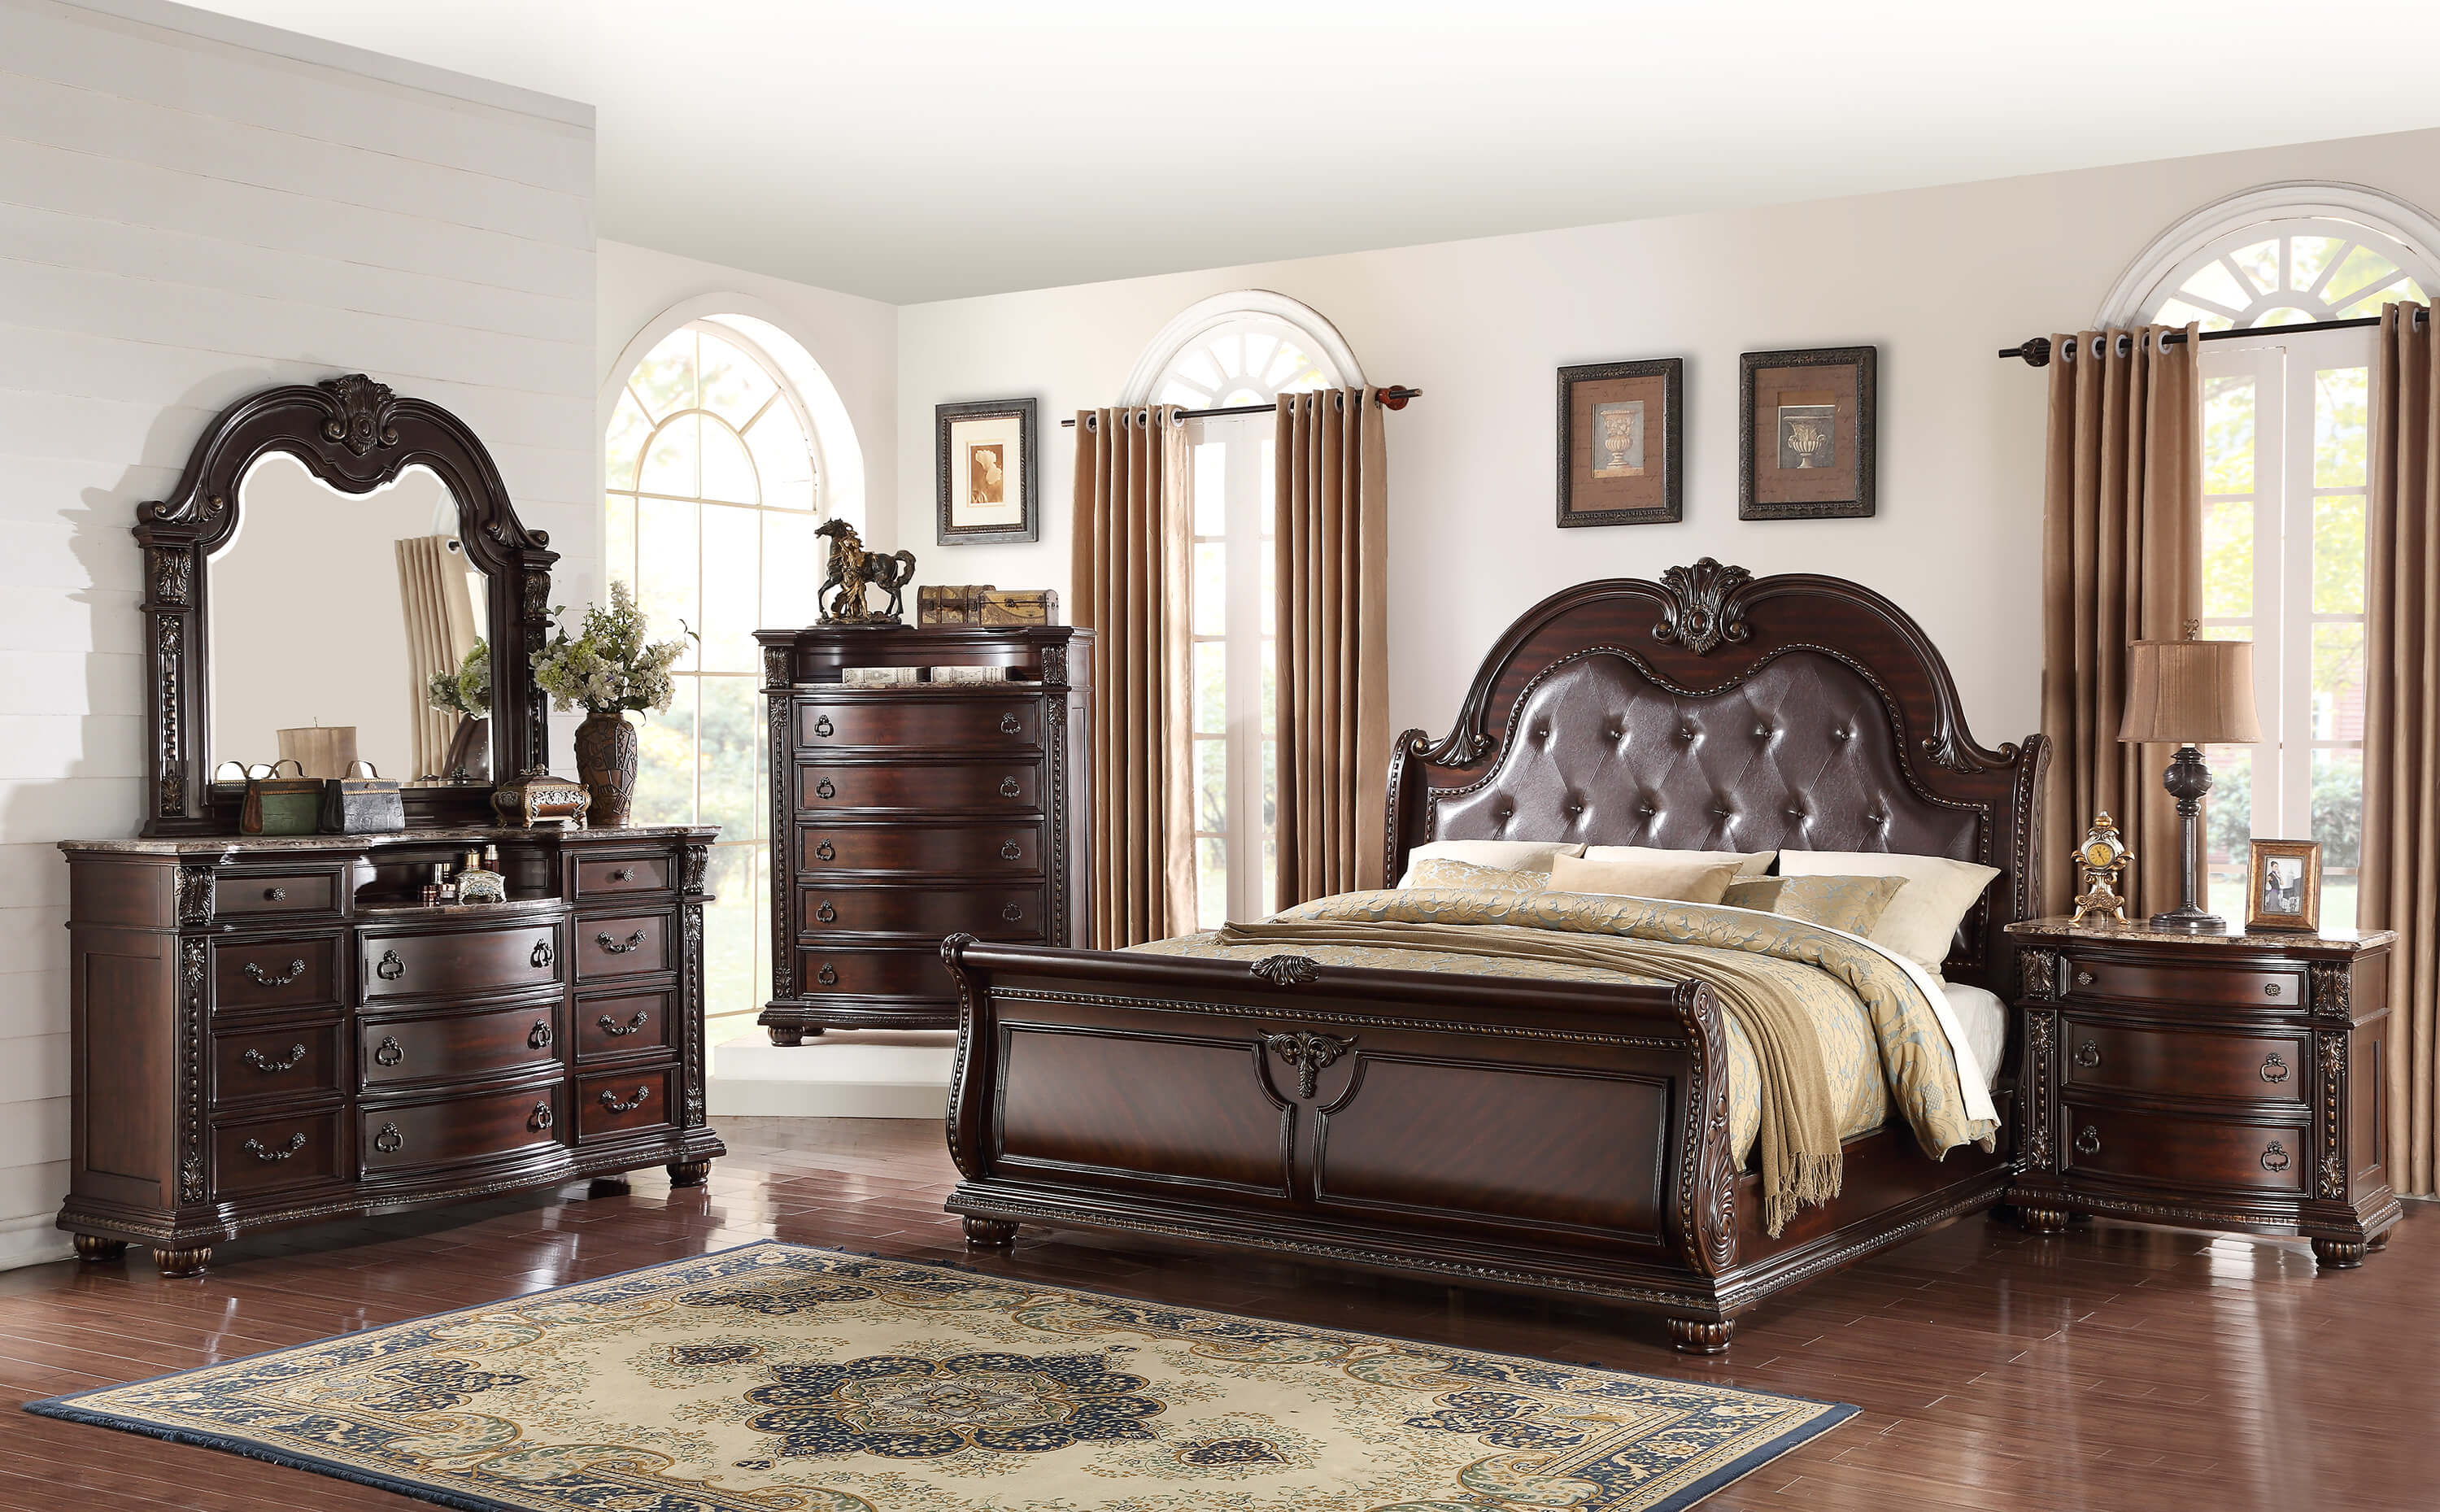 Stanley Marble Top Bedroom Set by Crown Mark. Stanley Marble Top Bedroom Set   Bedroom Furniture Sets